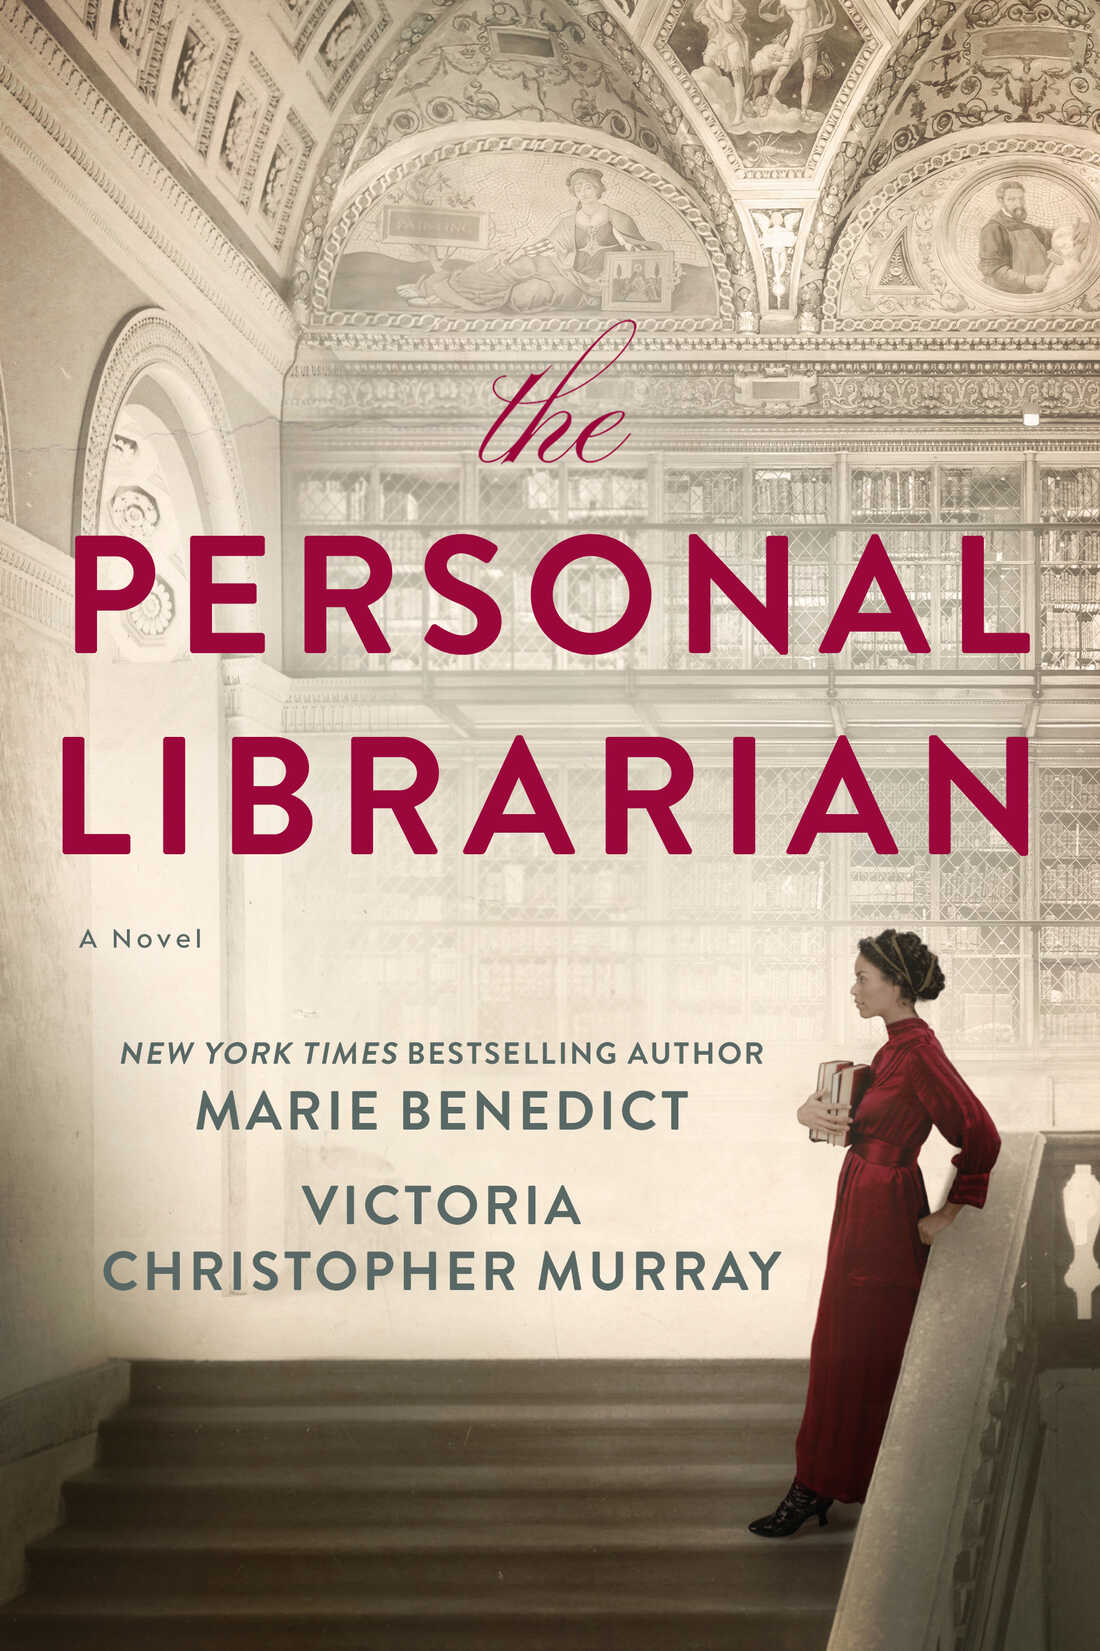 The cover of The Personal Librarian